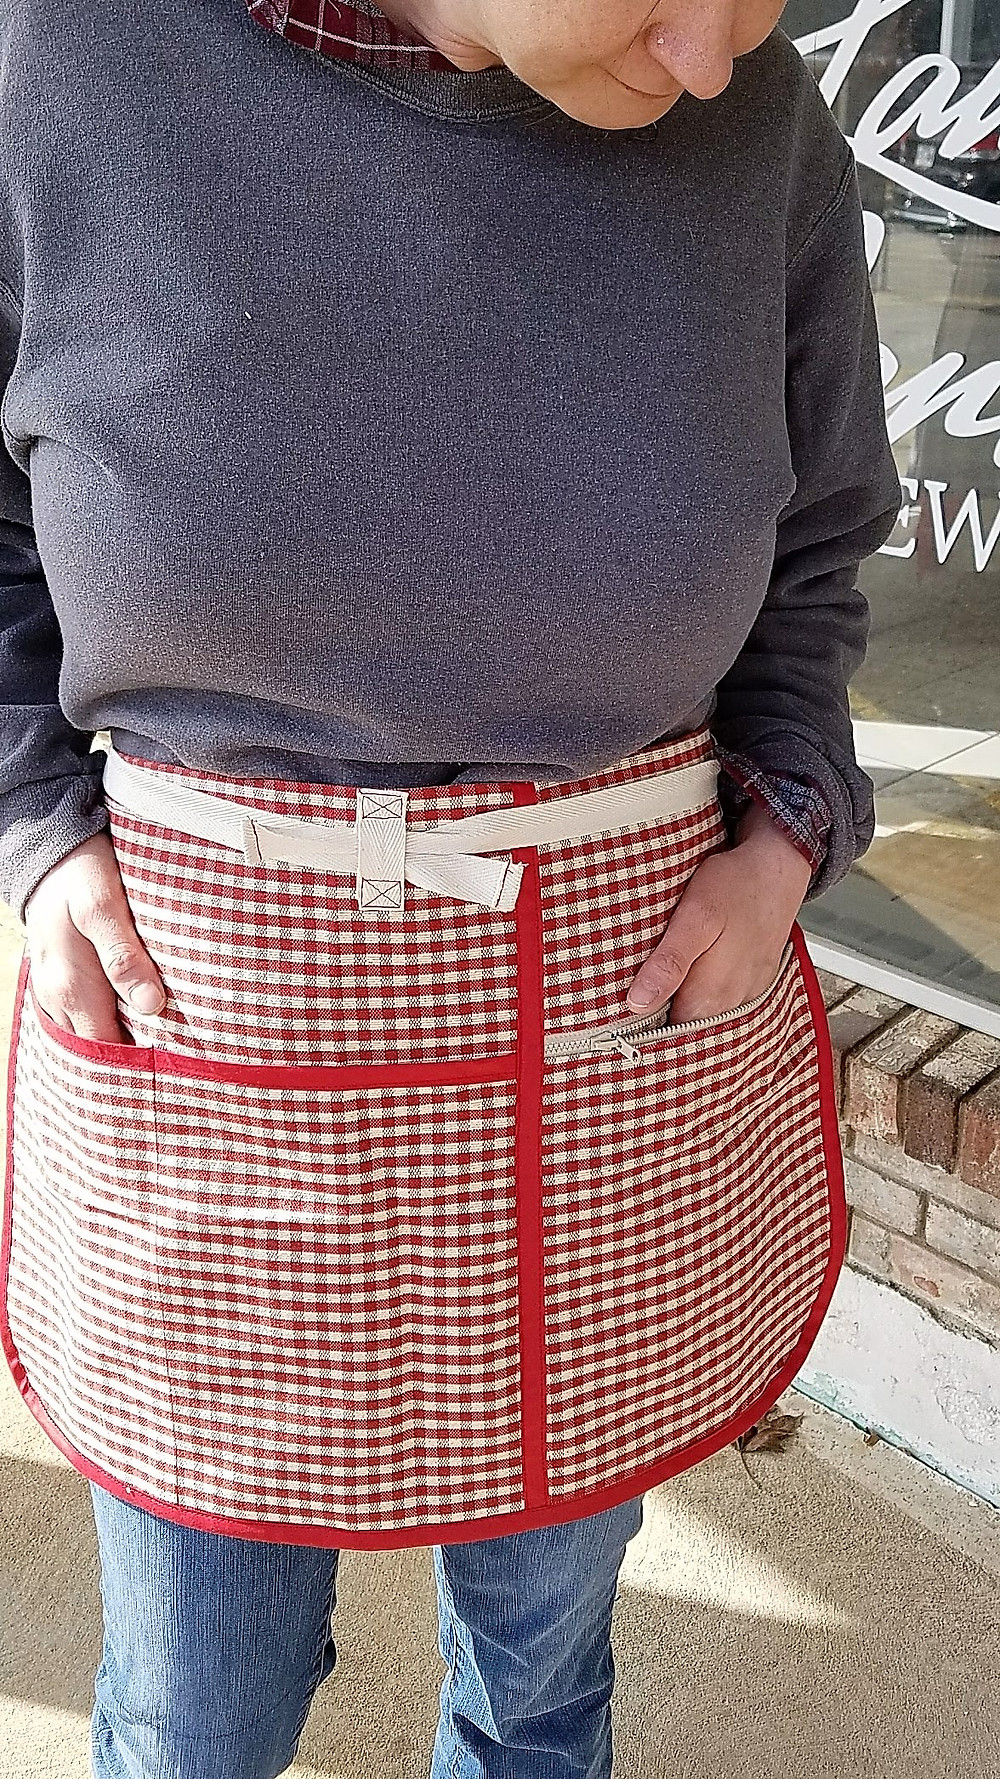 Money apron pocket with zipper